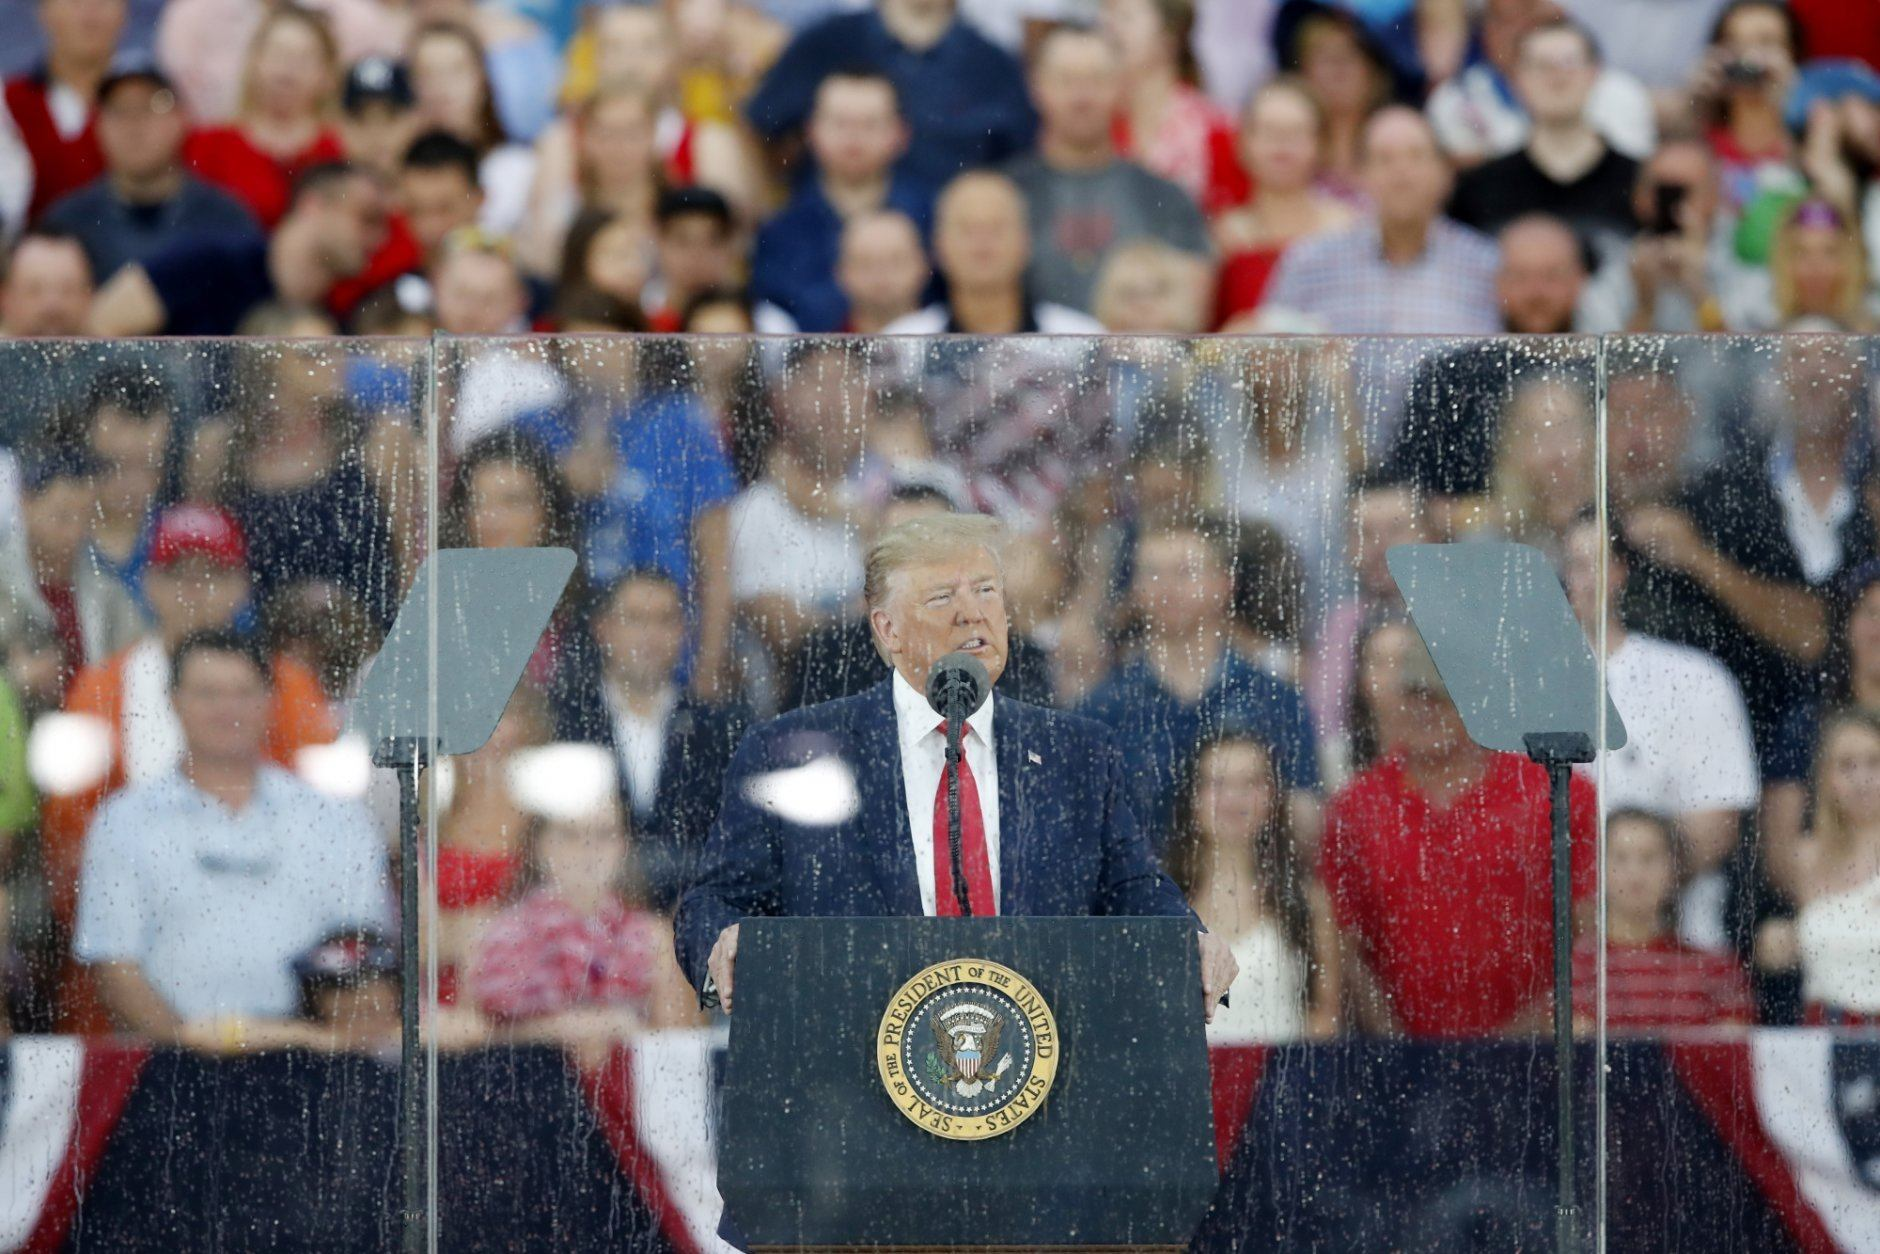 President Donald Trump speaks during an Independence Day celebration in front of the Lincoln Memorial, Thursday, July 4, 2019, in Washington. (AP Photo/Alex Brandon)